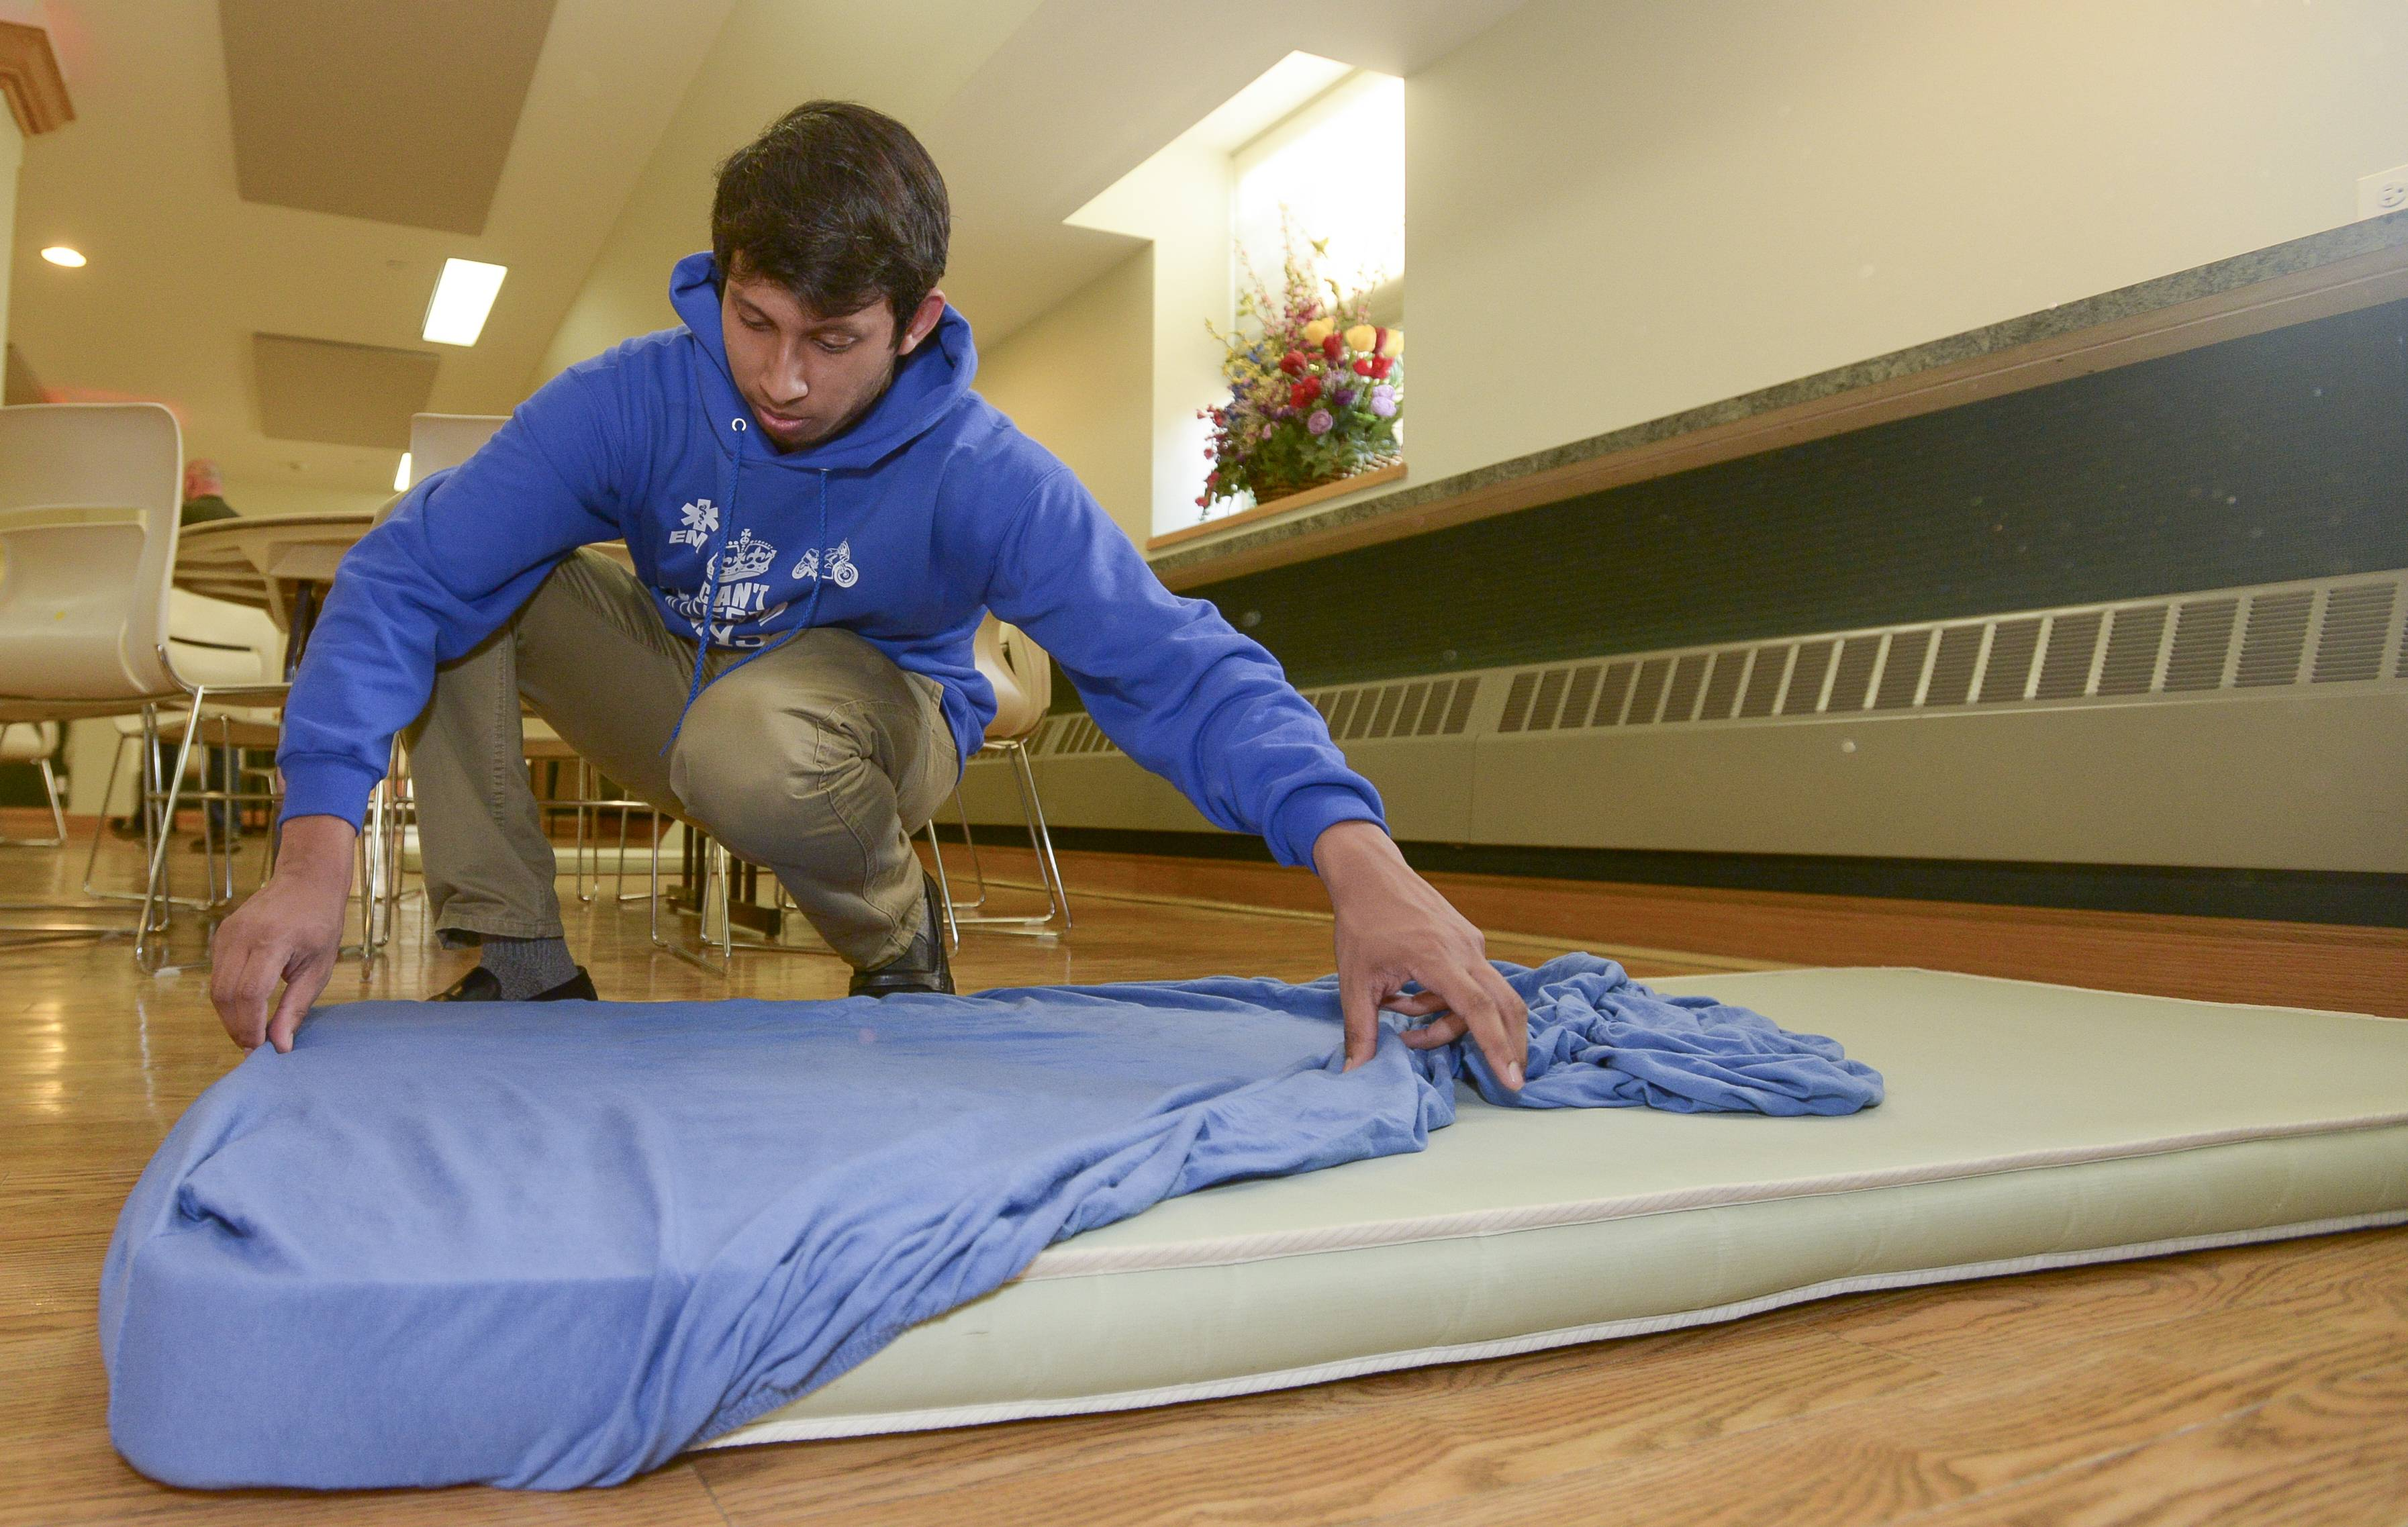 Daily Herald Leadership Team member Silas Ferrao of Naperville Central helps make up beds while volunteering Sunday at the Community United Methodist Church's PADS shelter in Naperville.